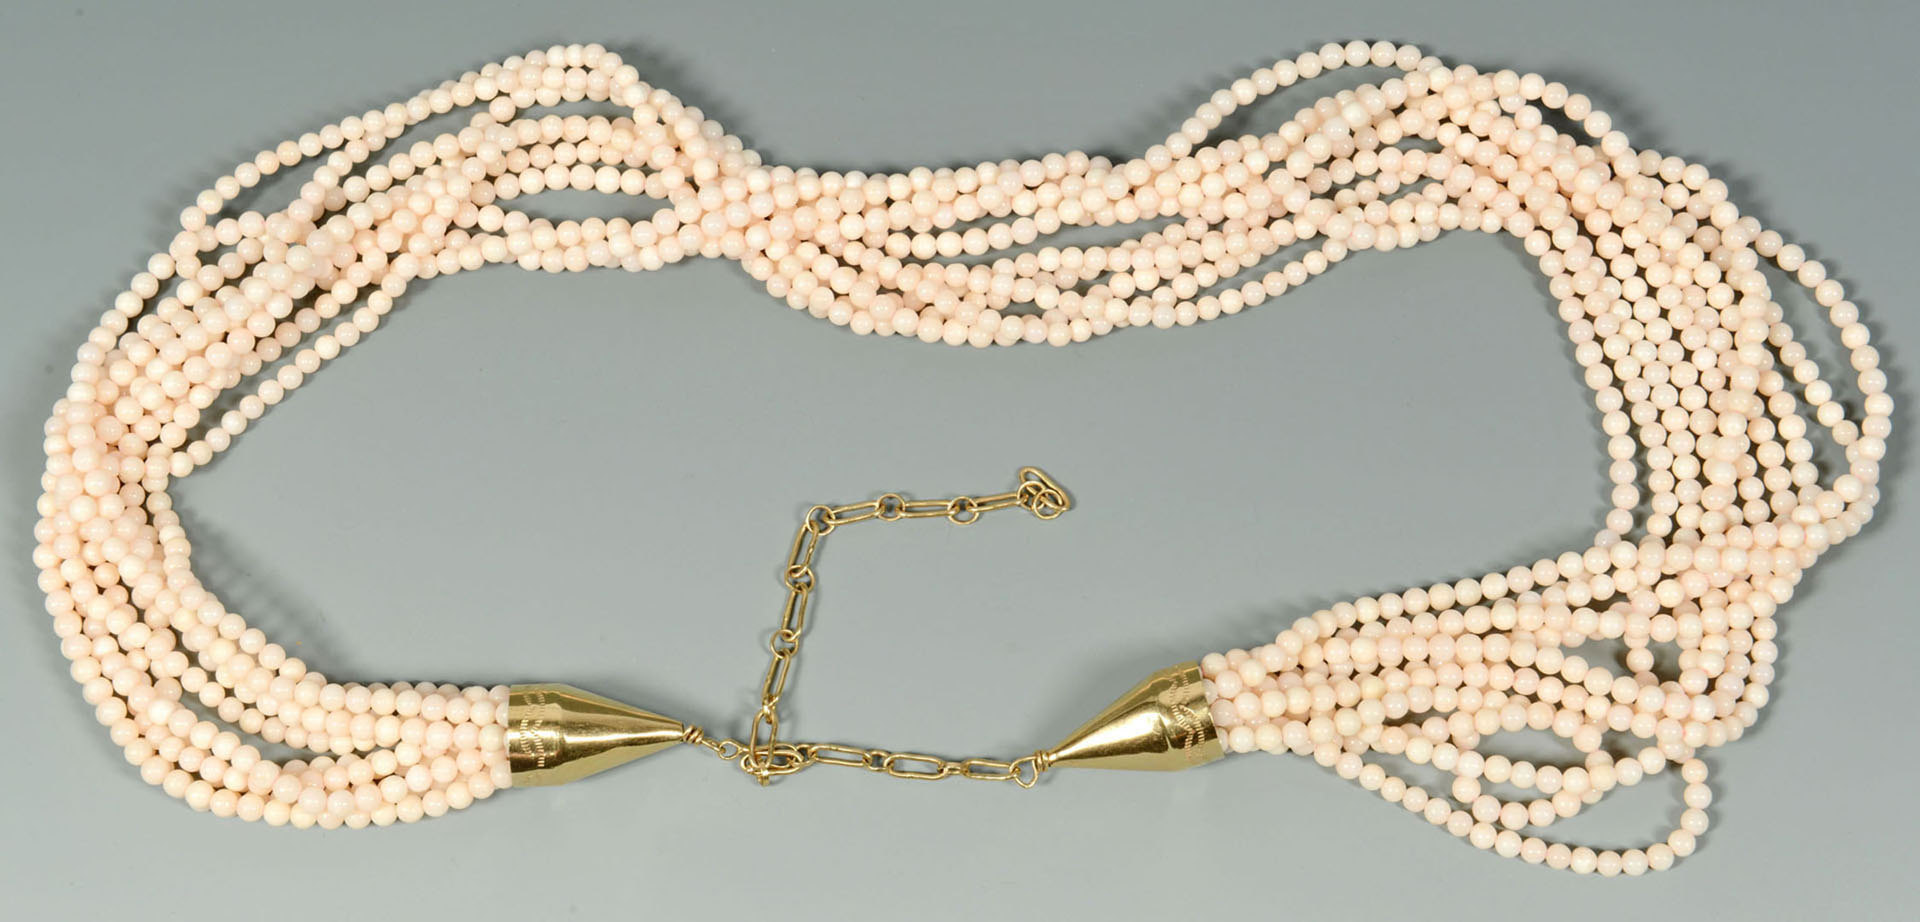 Lot 493: Angelskin Coral and 14K Gold Necklace